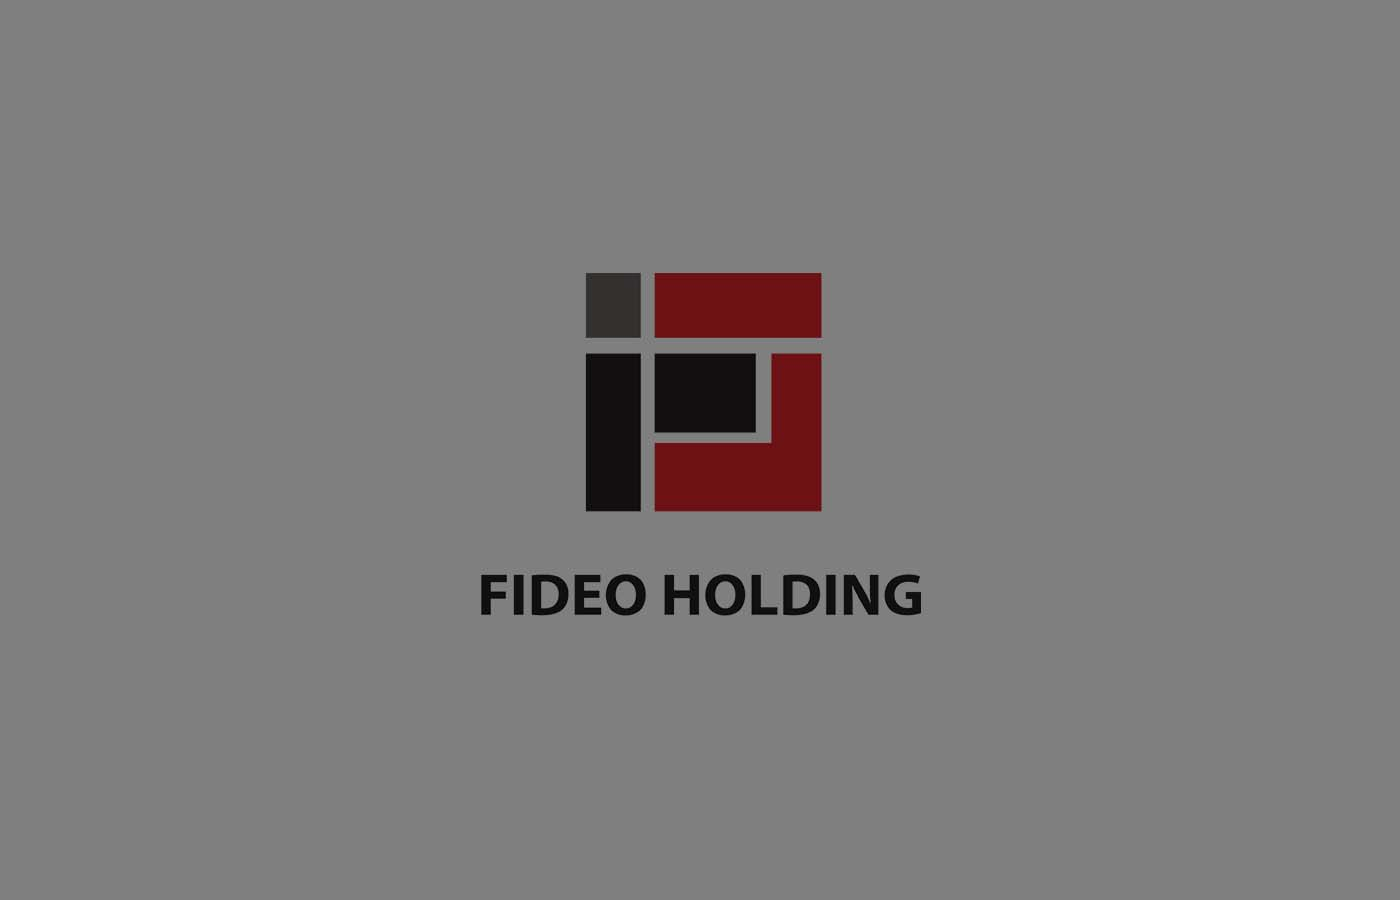 video-fideoholding